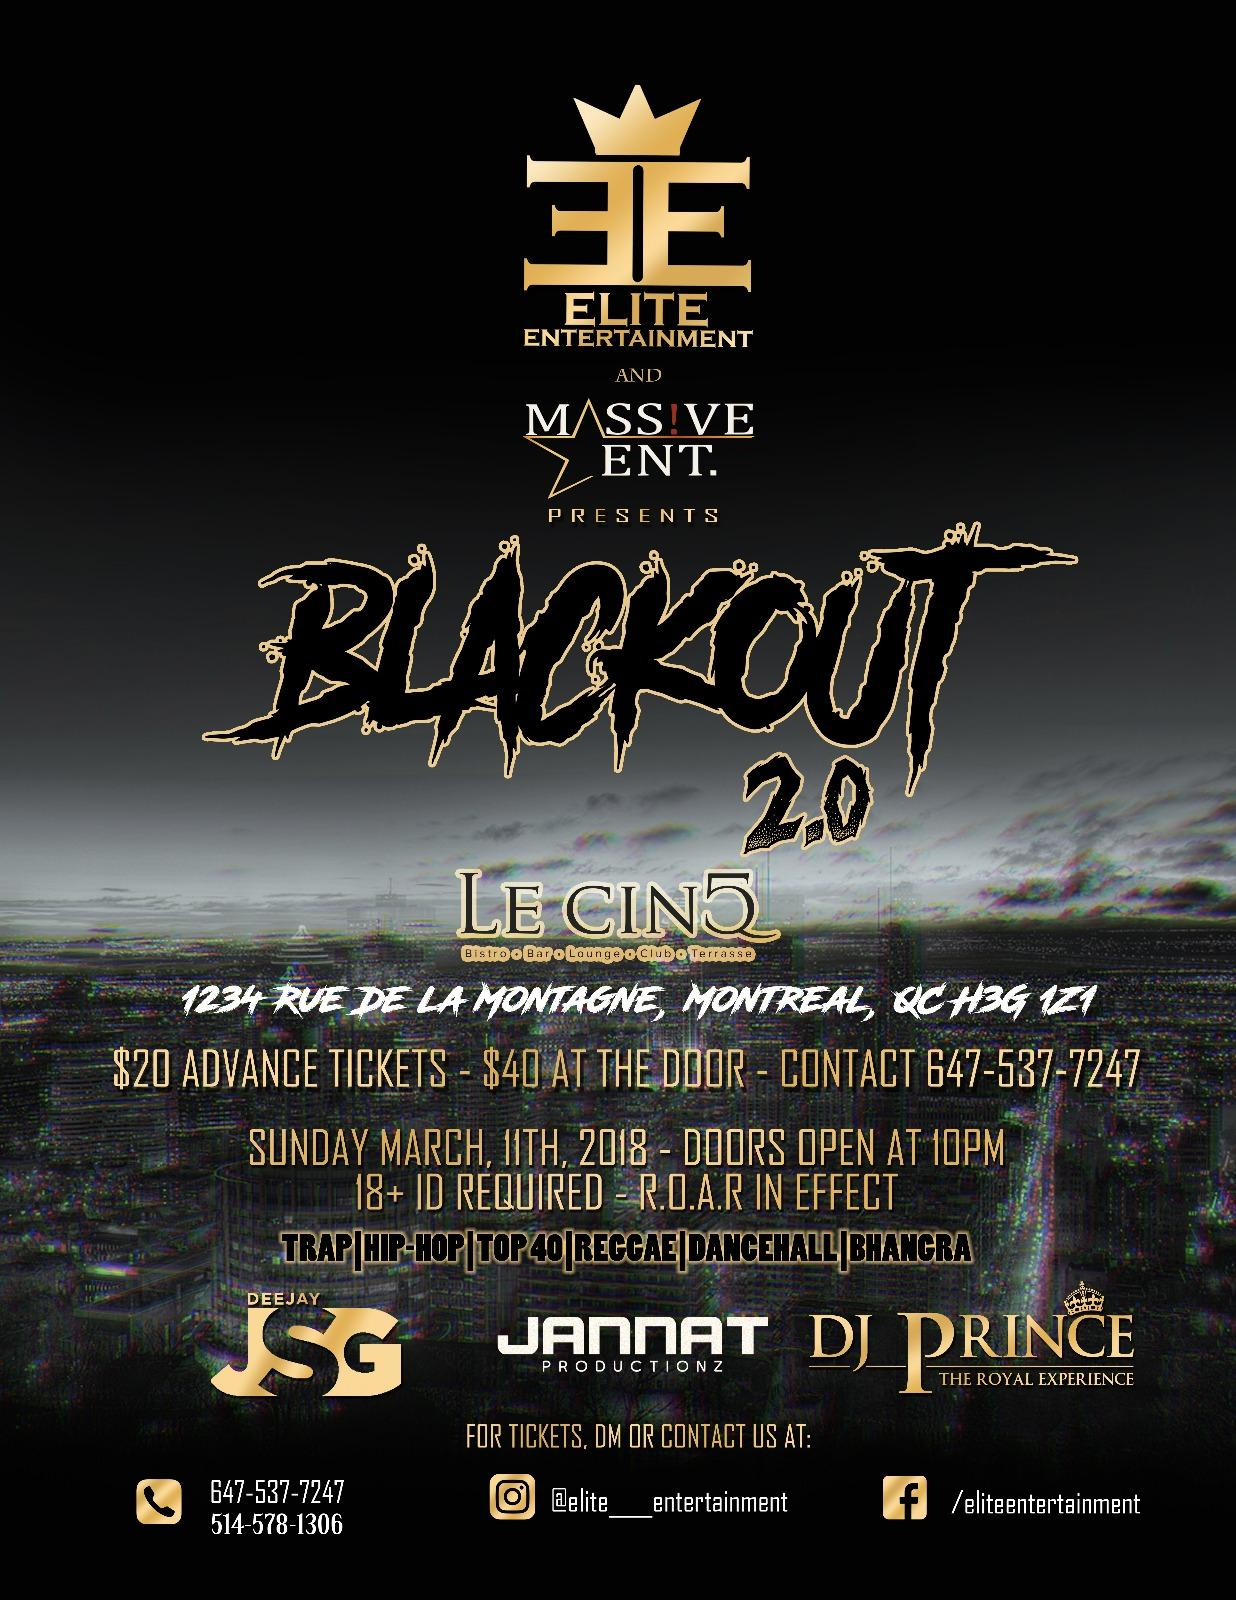 BLACK OUT 2.0